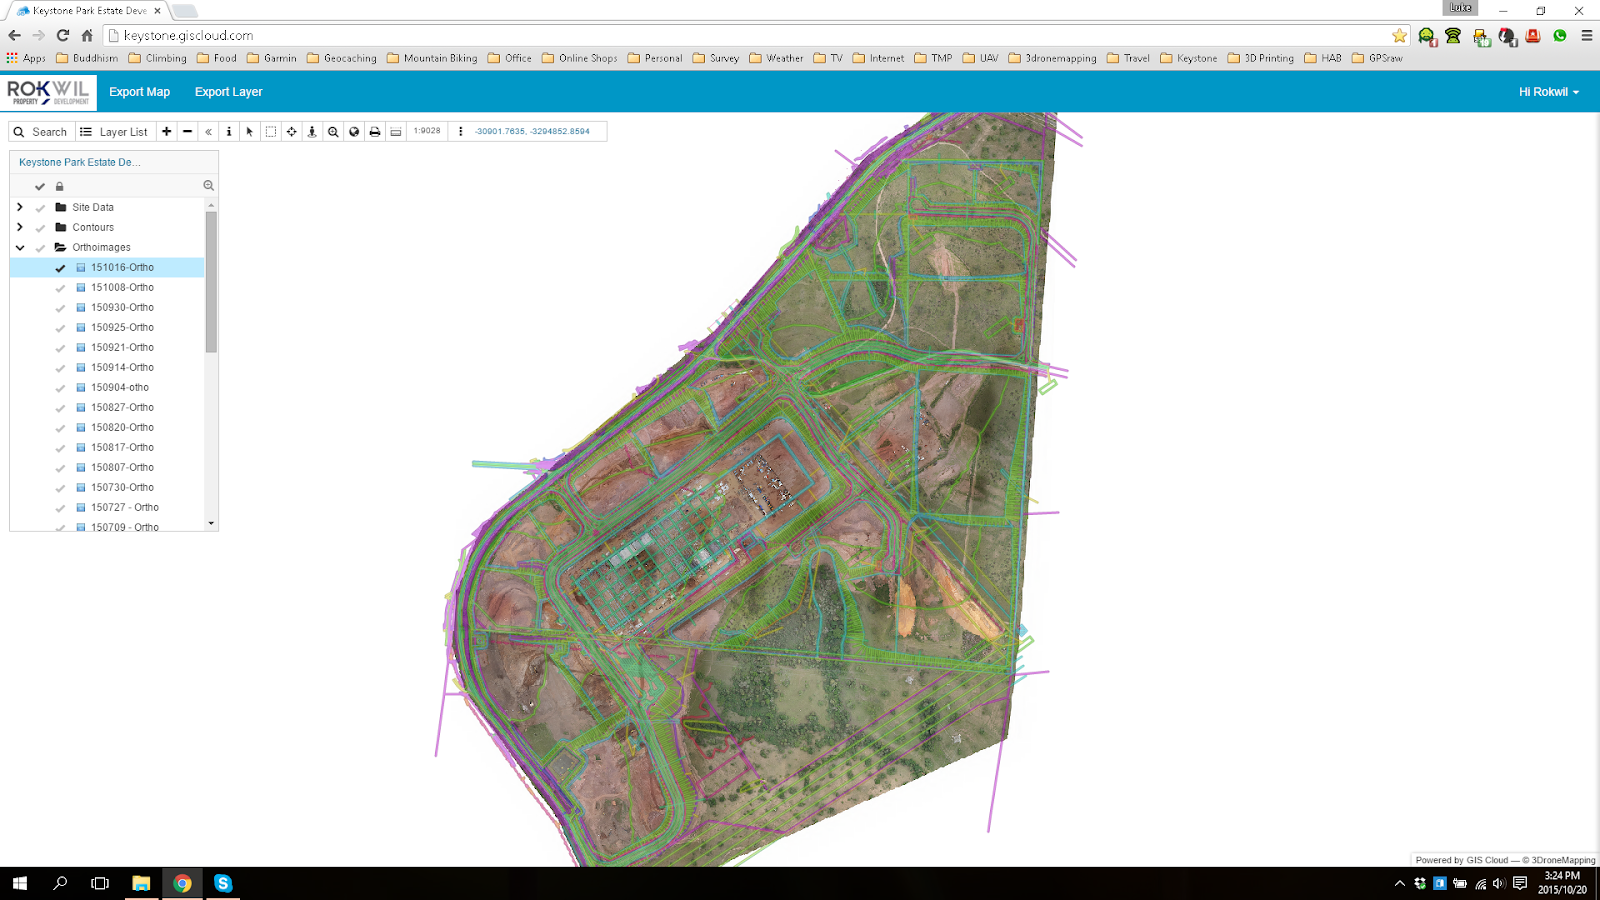 Sharing 3D Drone Mapping Imagery With Clients | GIS Cloud